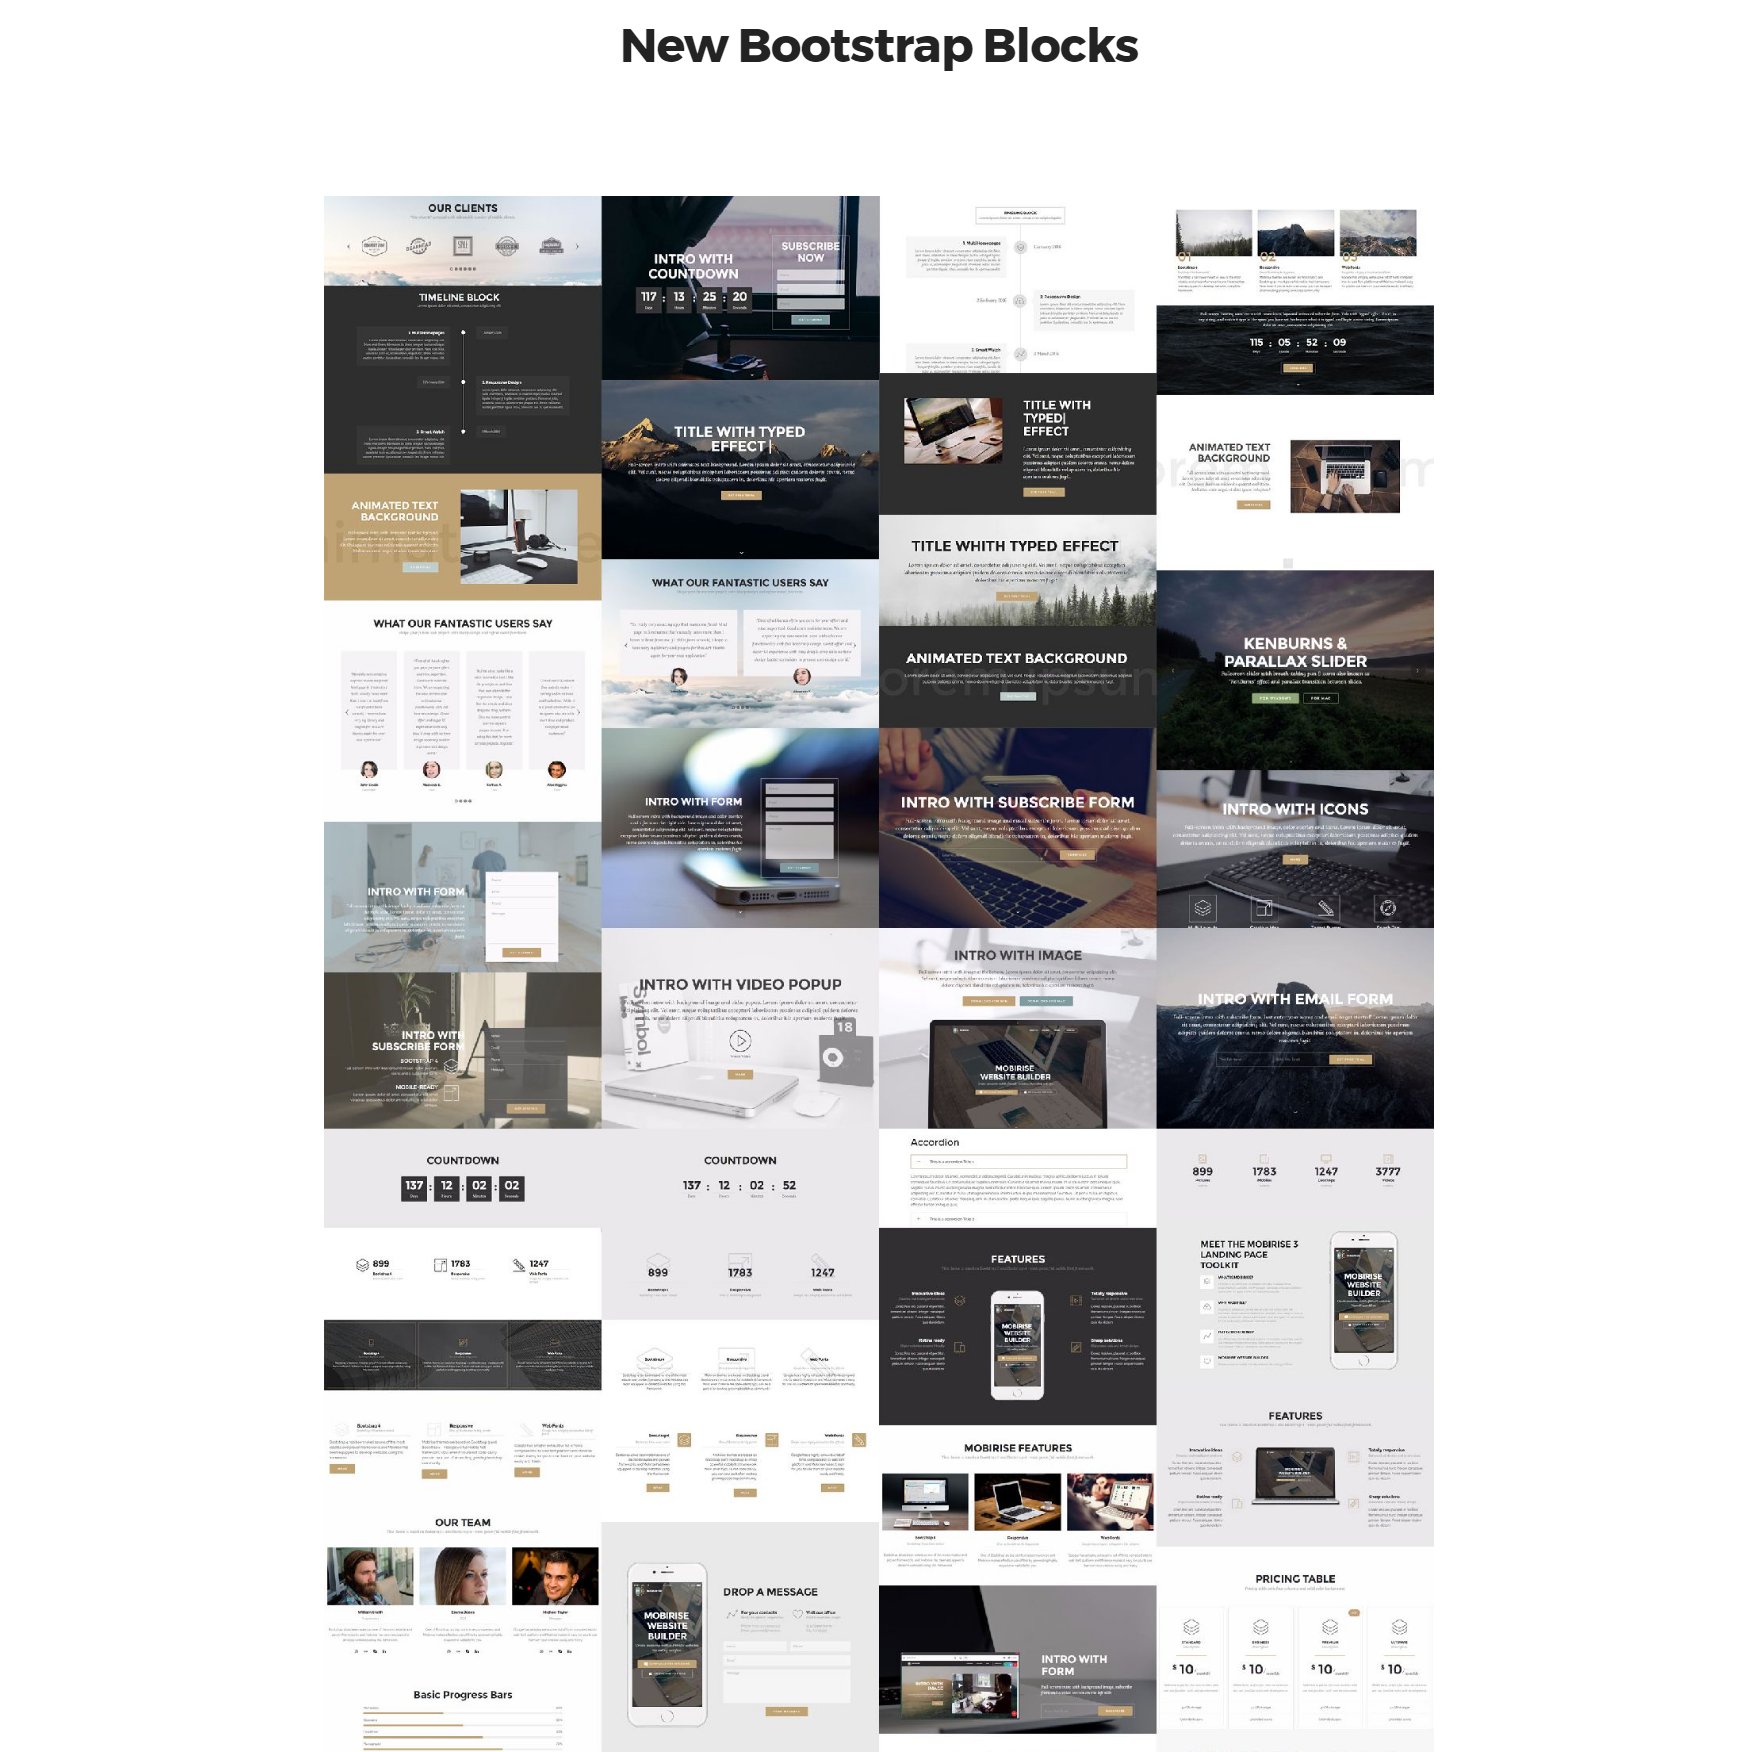 Free Bootstrap 4 mobile-friendly blocks Templates